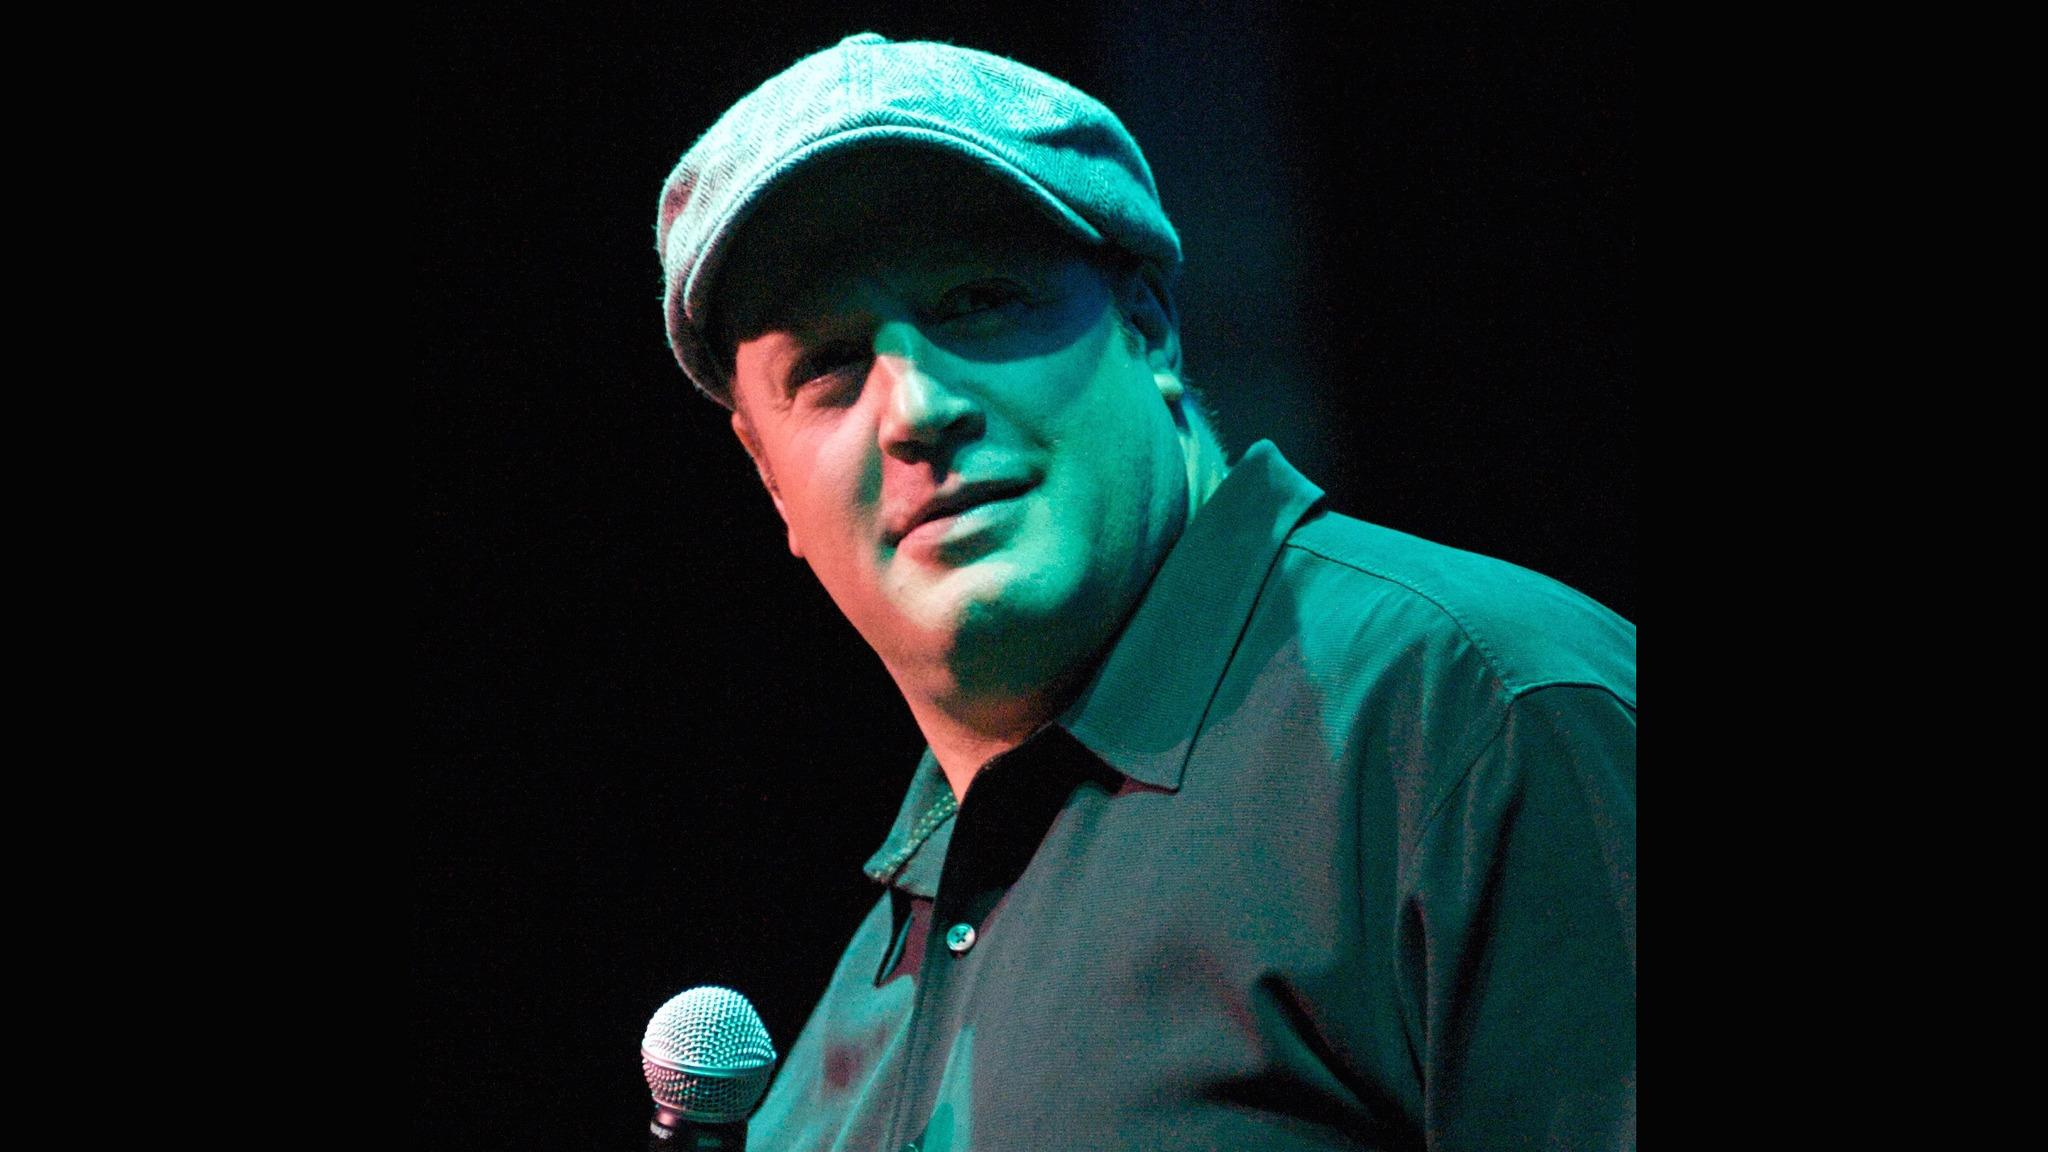 Kevin James presale code for early tickets in Hollywood